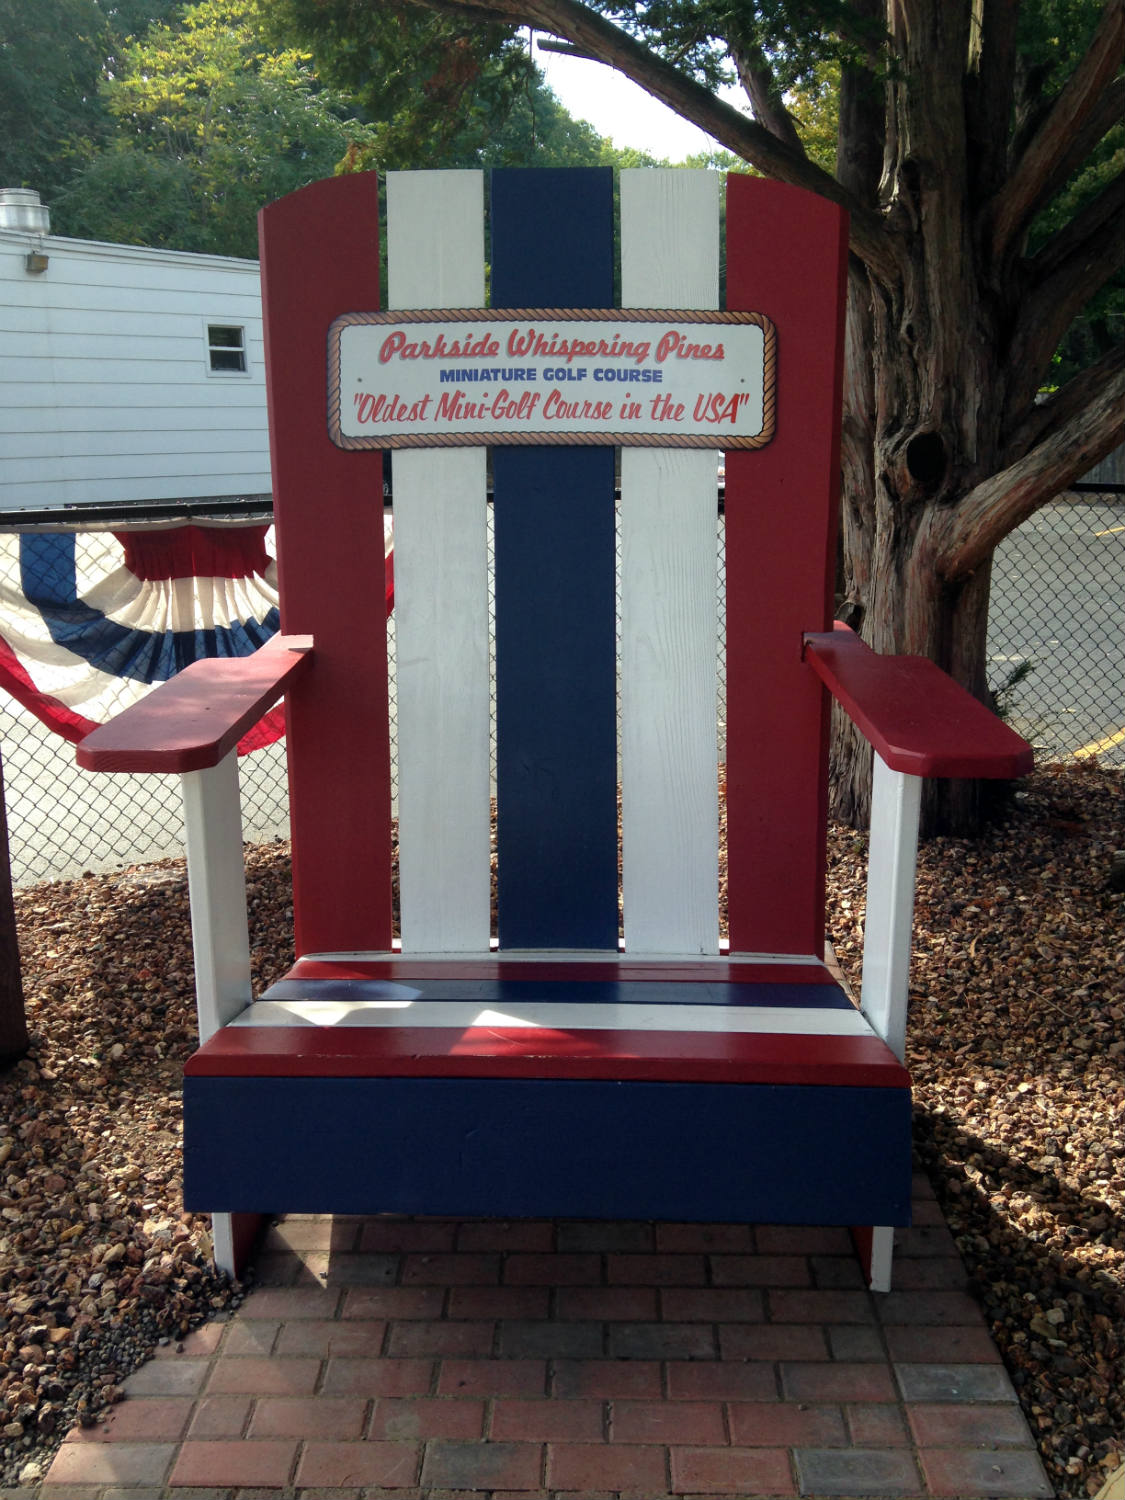 Wonderful Oversized Adirondack Chair At Whispering Pines Mini Golf; Rochester, NY